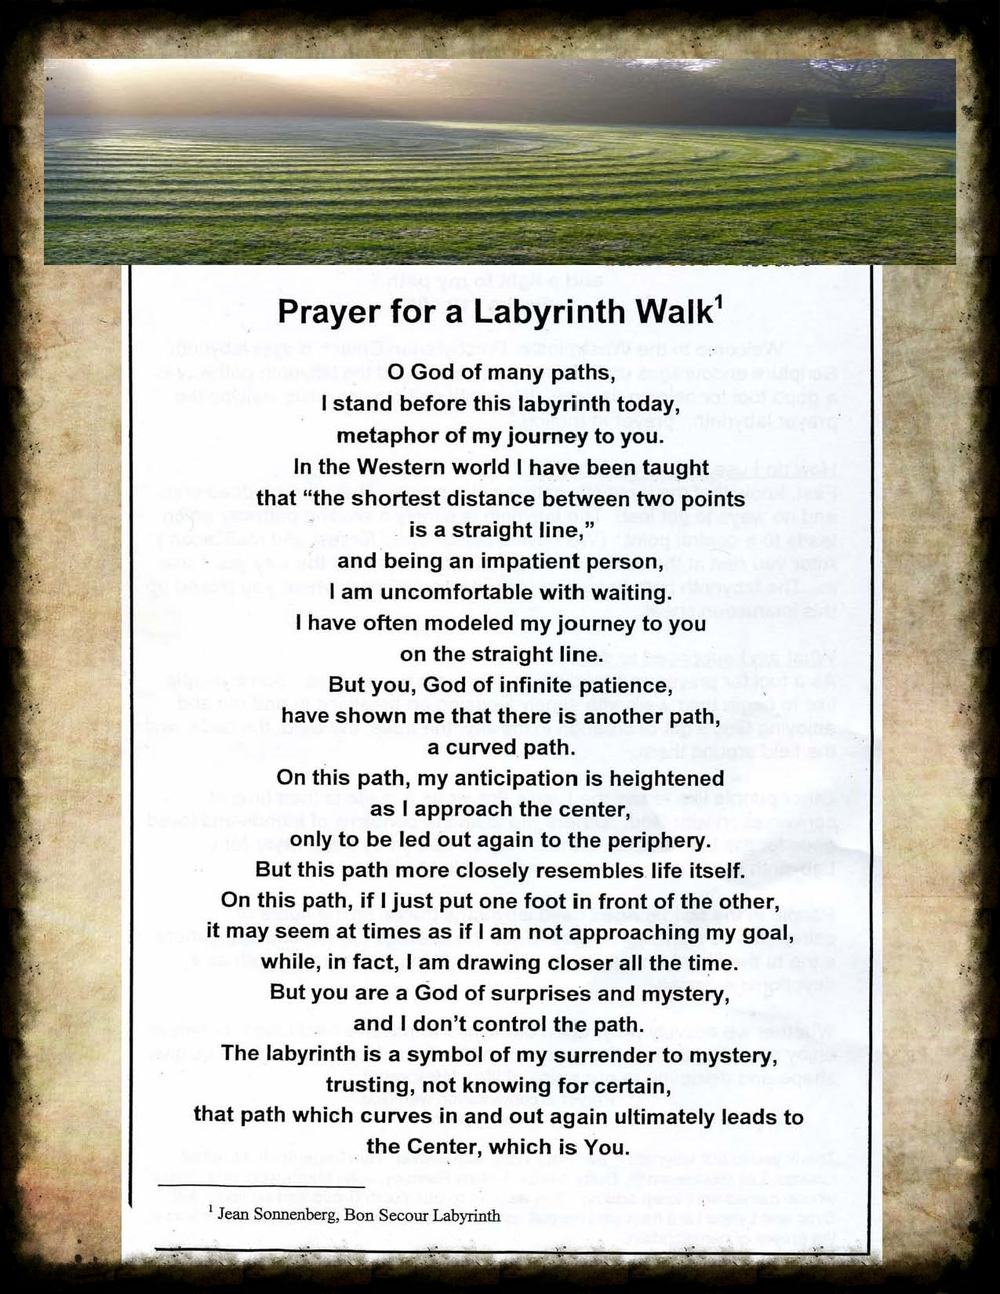 Prayer for a Labyrinth Walk